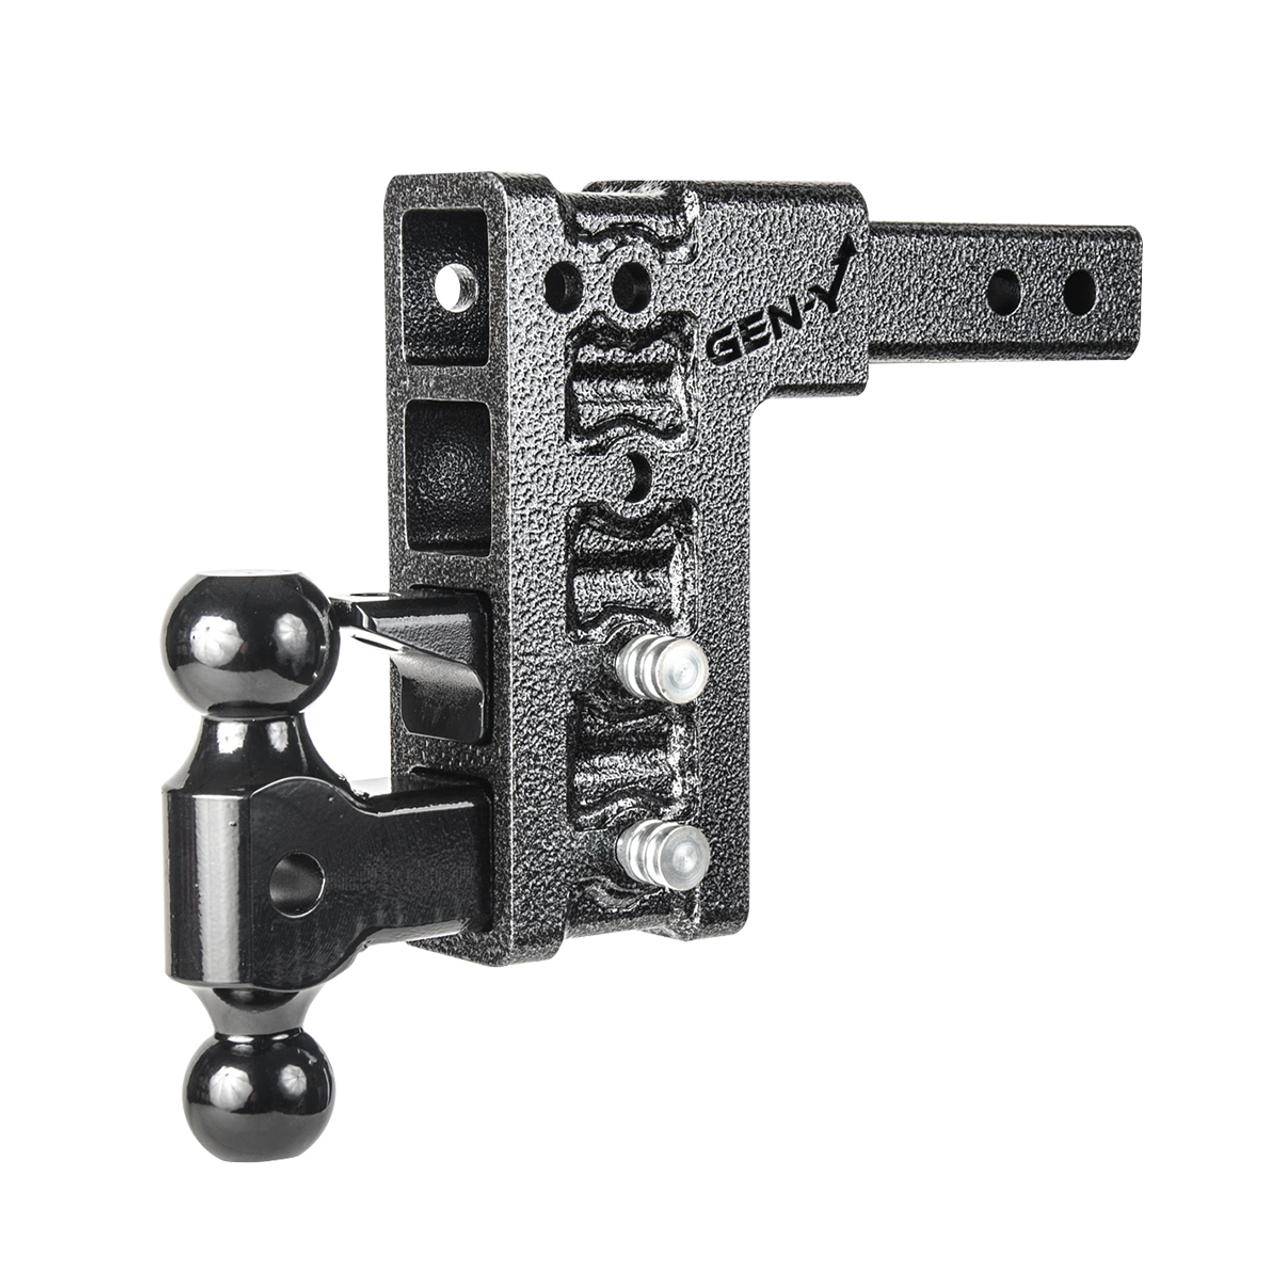 """GH-1624 --- Four Position Mega-Duty 2.5"""" Shank with Dual Ball and Pintle - 32,000 lb Capacity"""